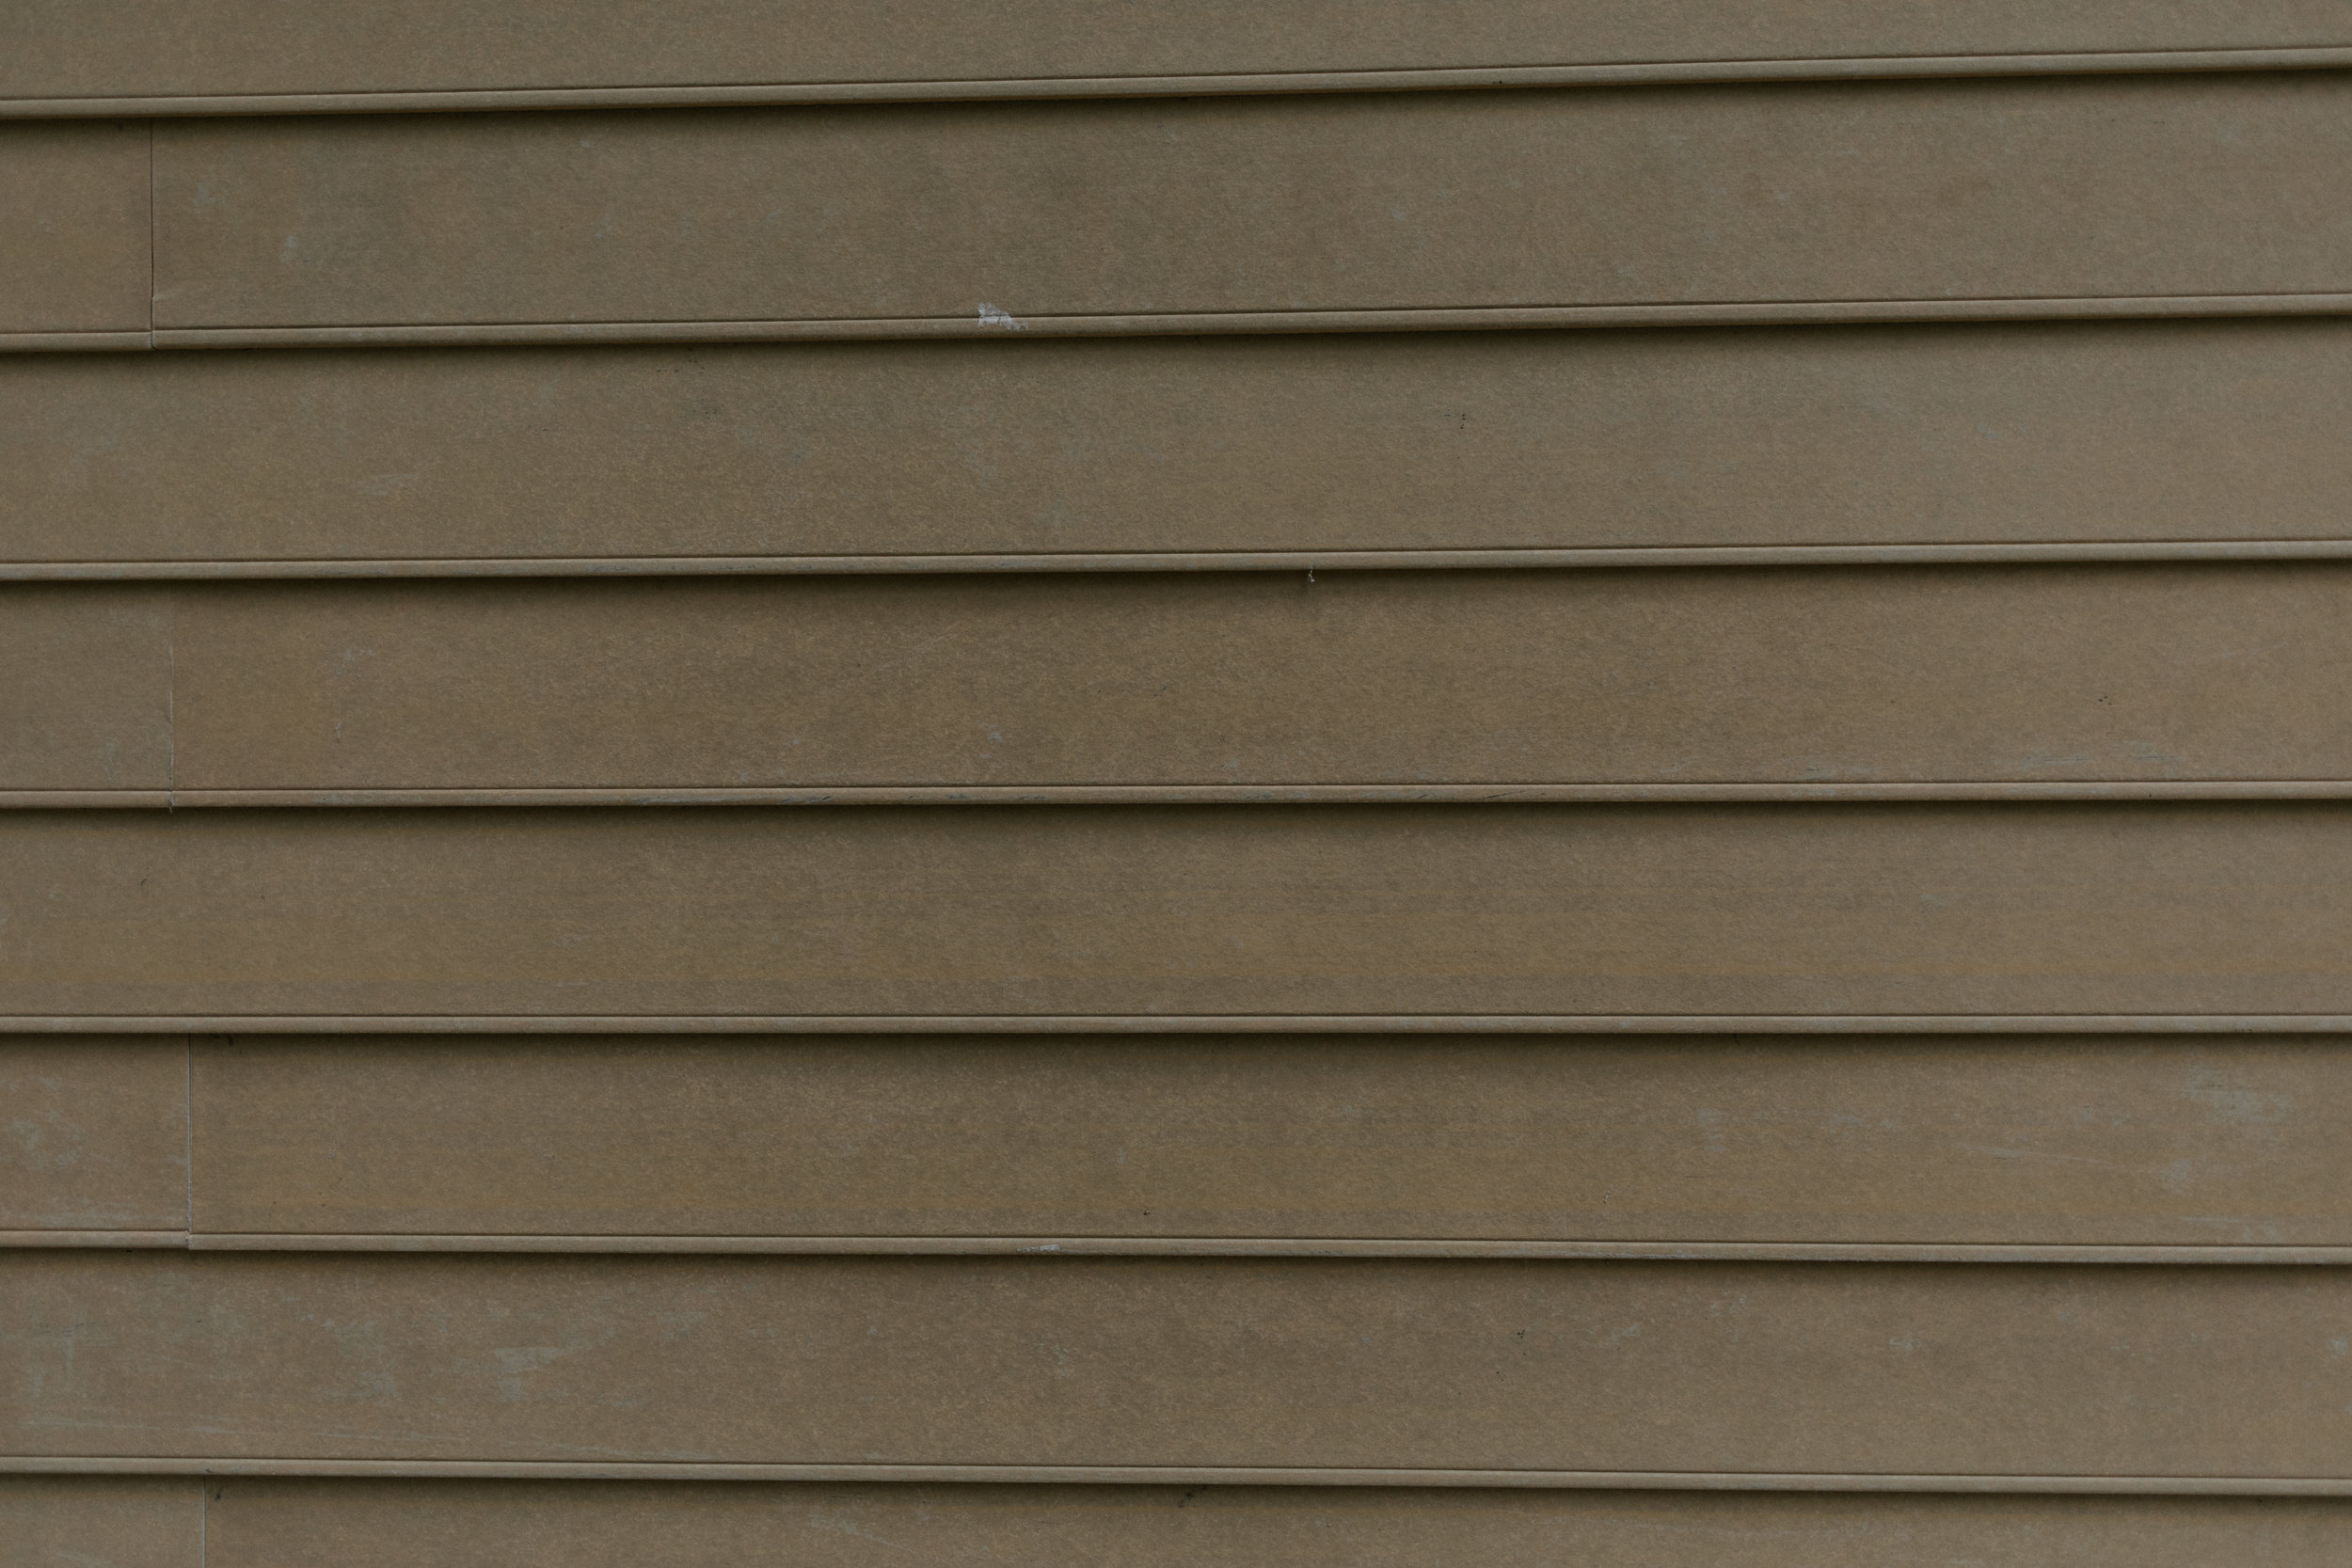 Installing James Hardie planks on an exterior wall